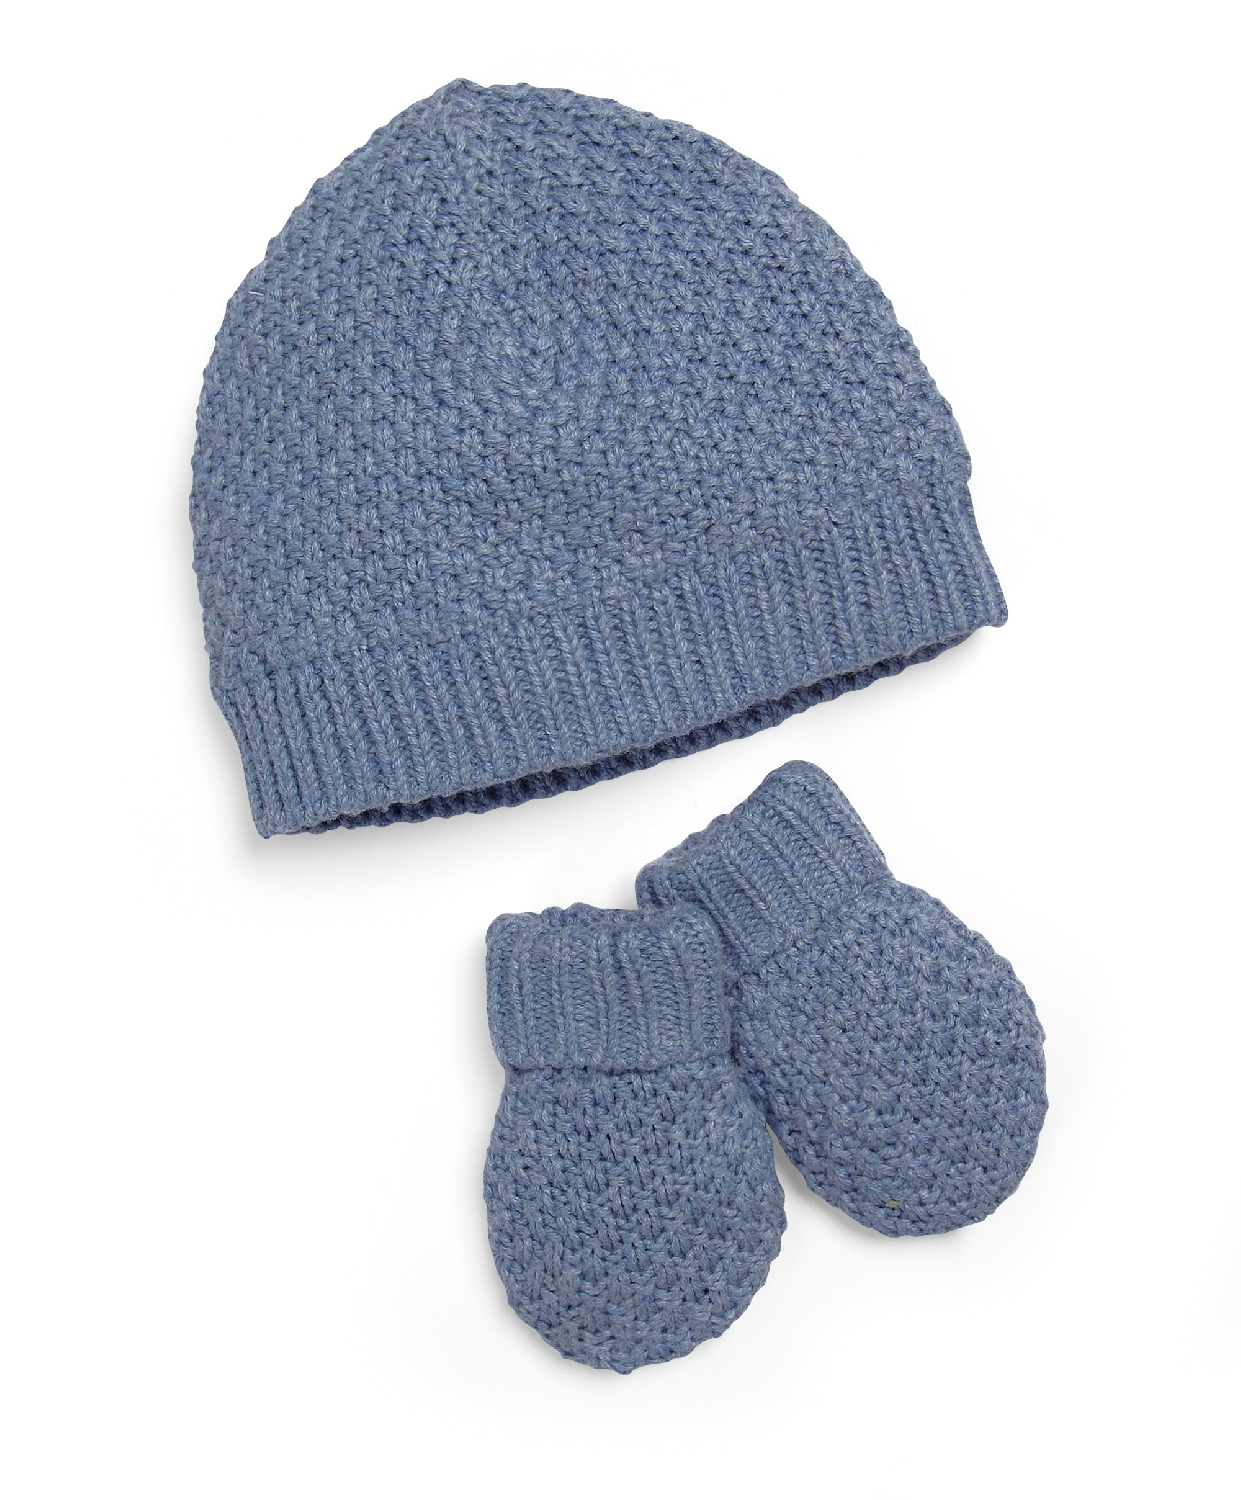 s432a53-knitted-hat-&amp-mitts-blue-